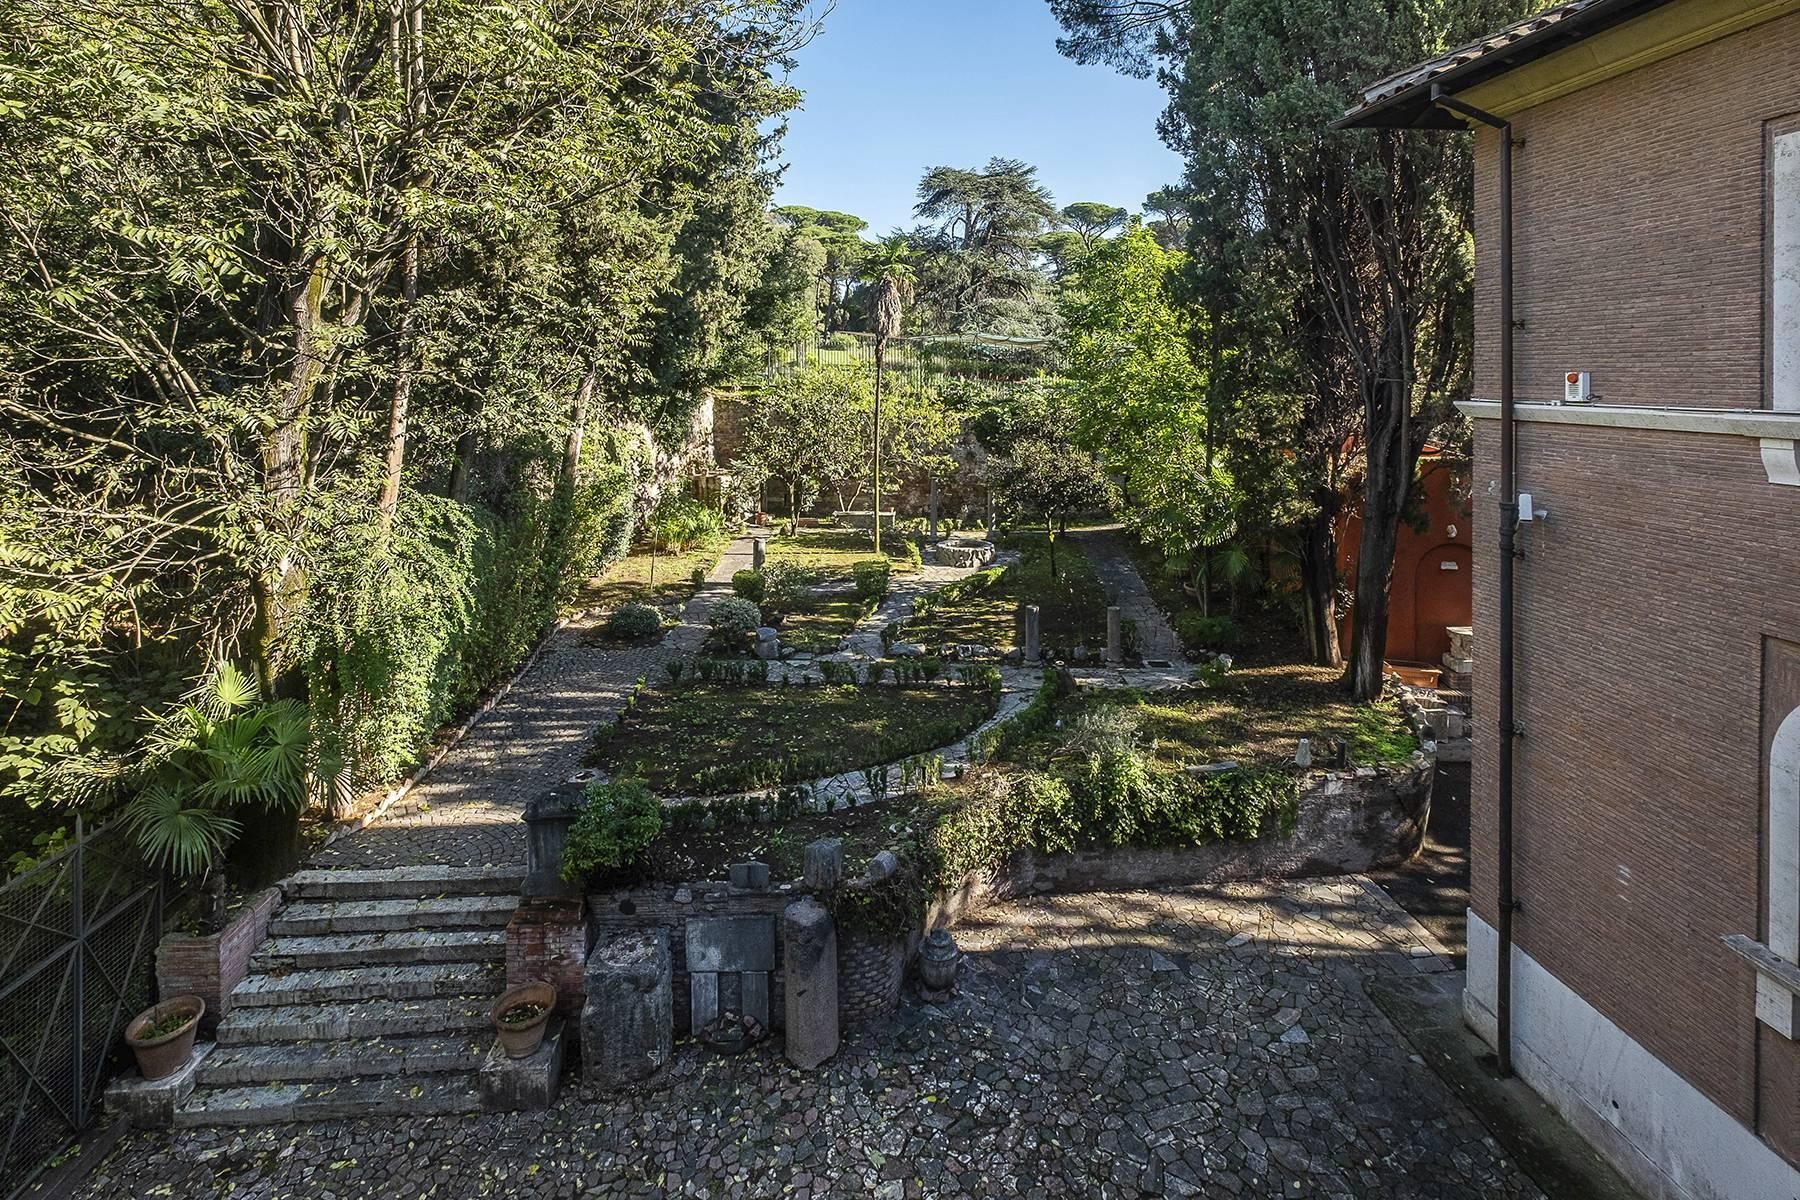 Elegant classical  Villa in the heart of Rome's archaeological ruins - 41